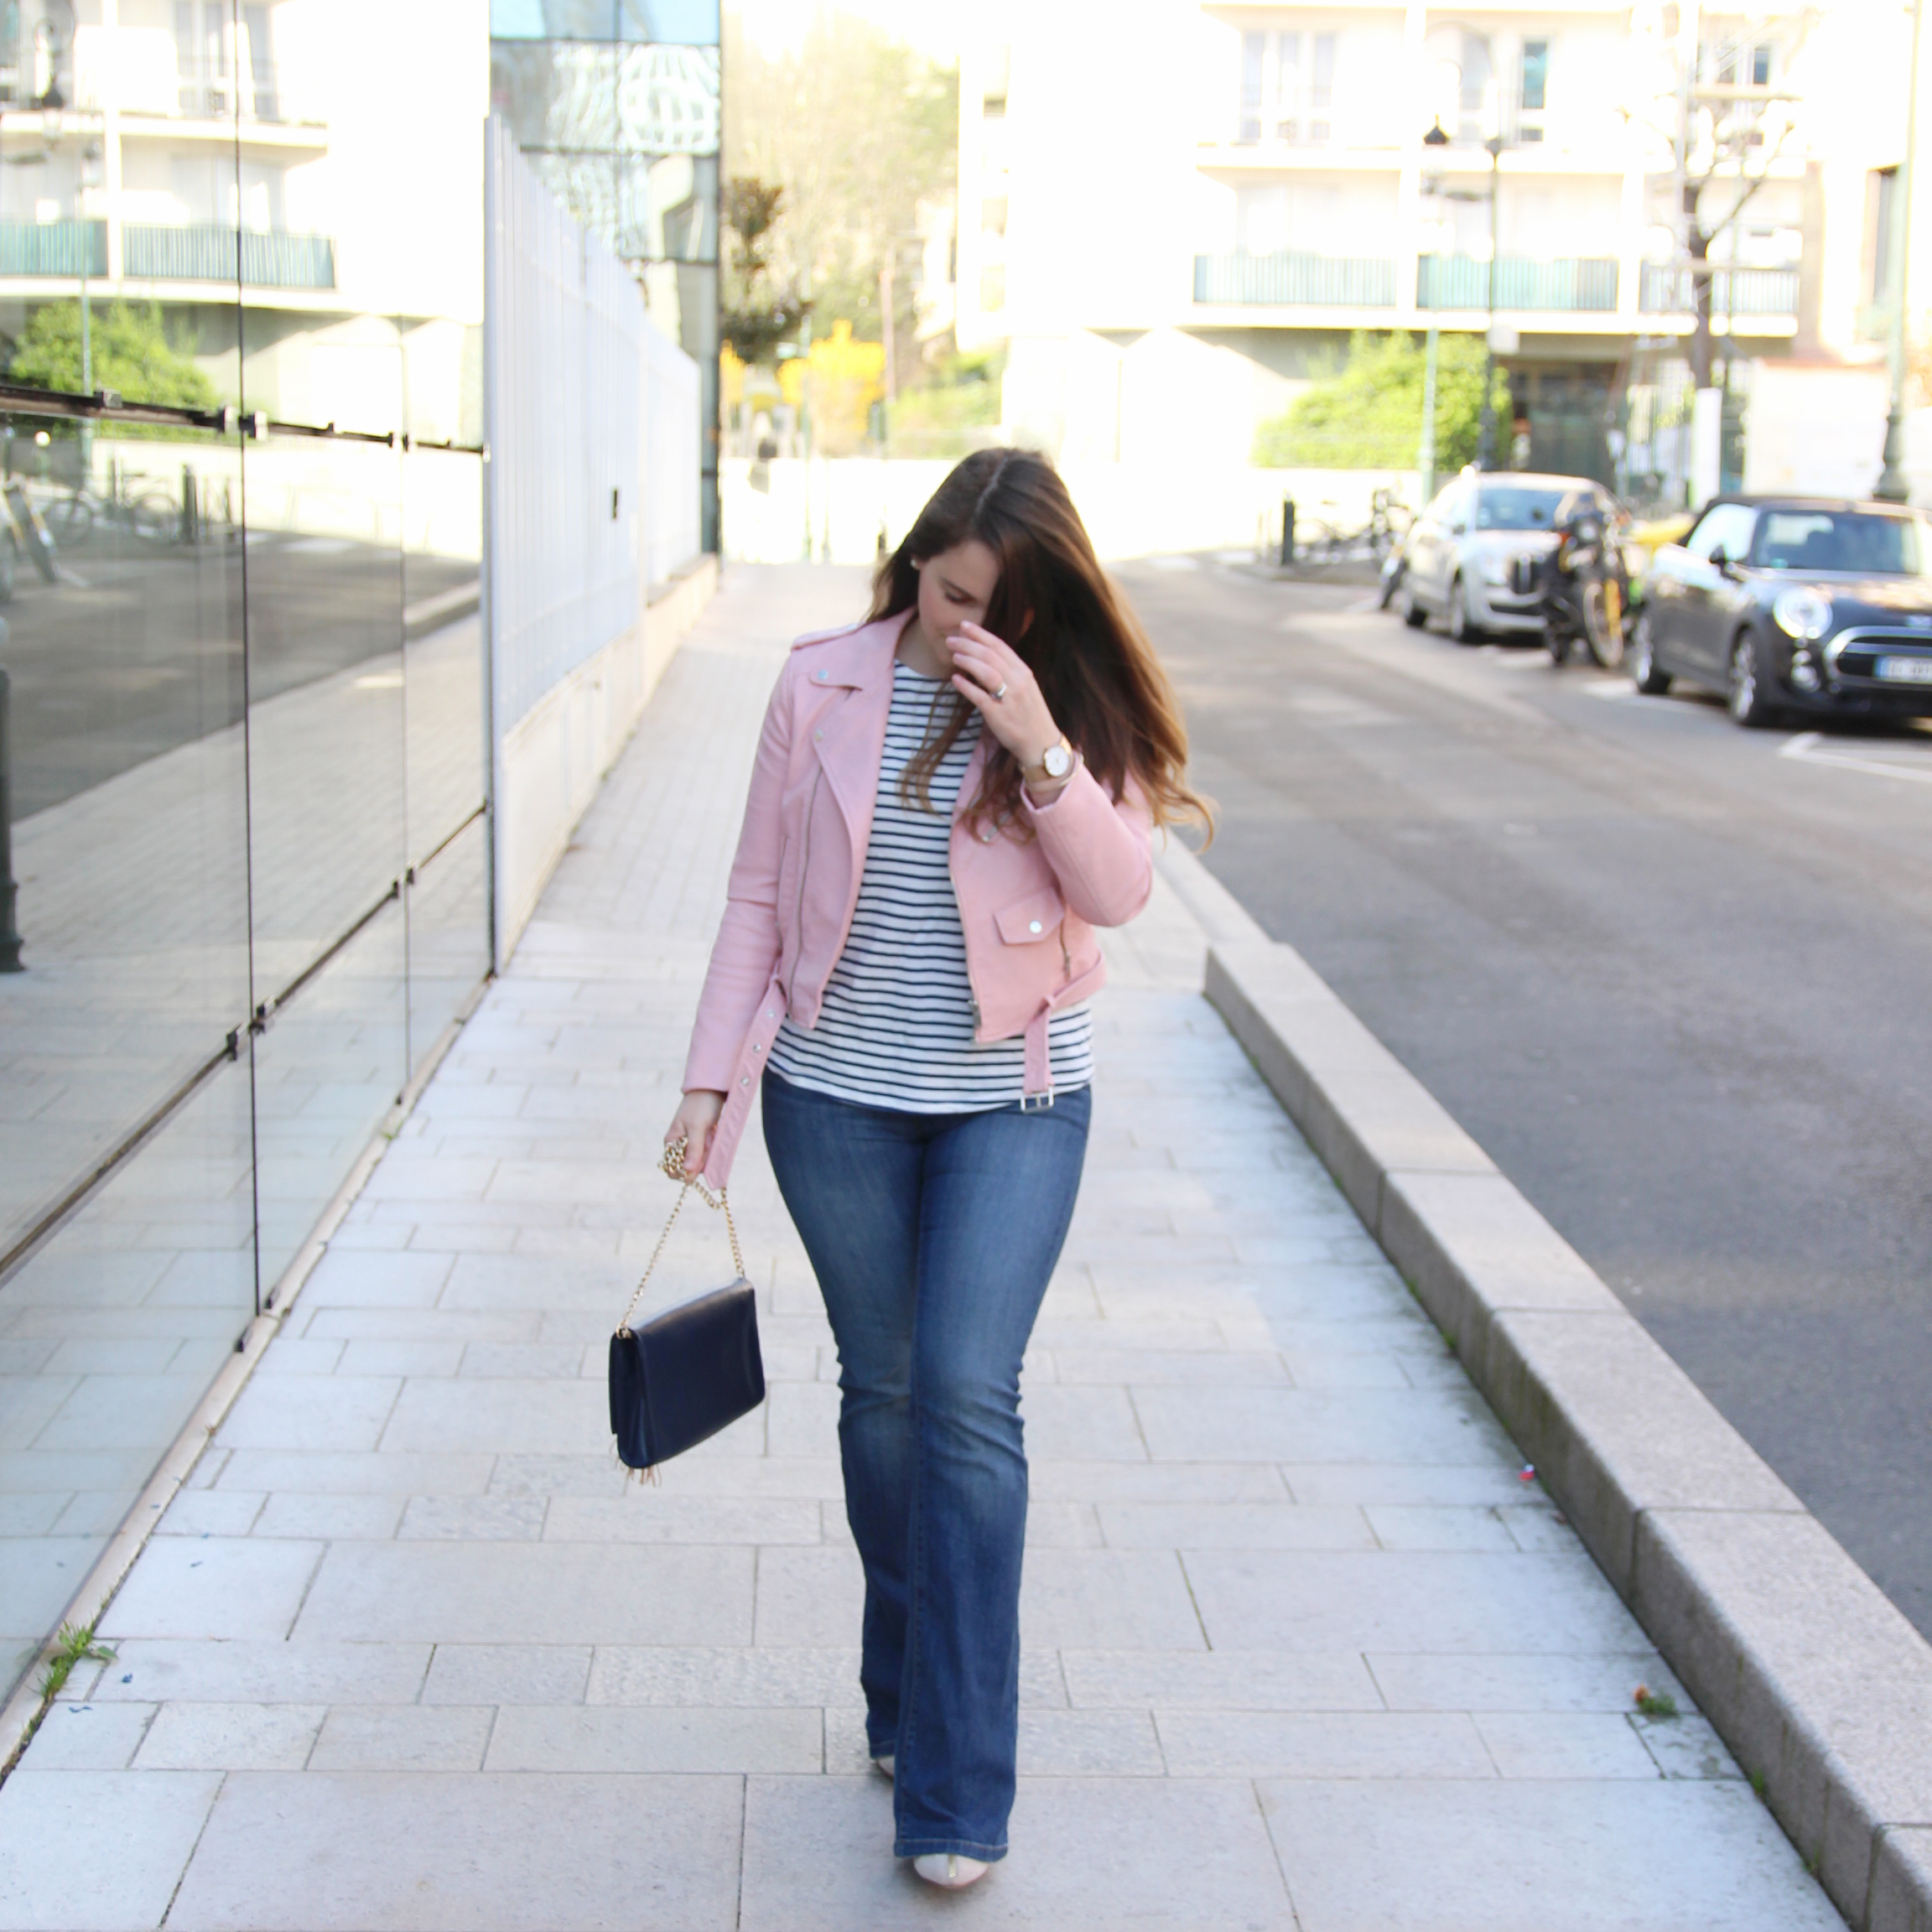 perfecto-rose-zara-marinniere-denim-influencer-fashion-ottd-look-seralynepointcom-paris-IMG_6988